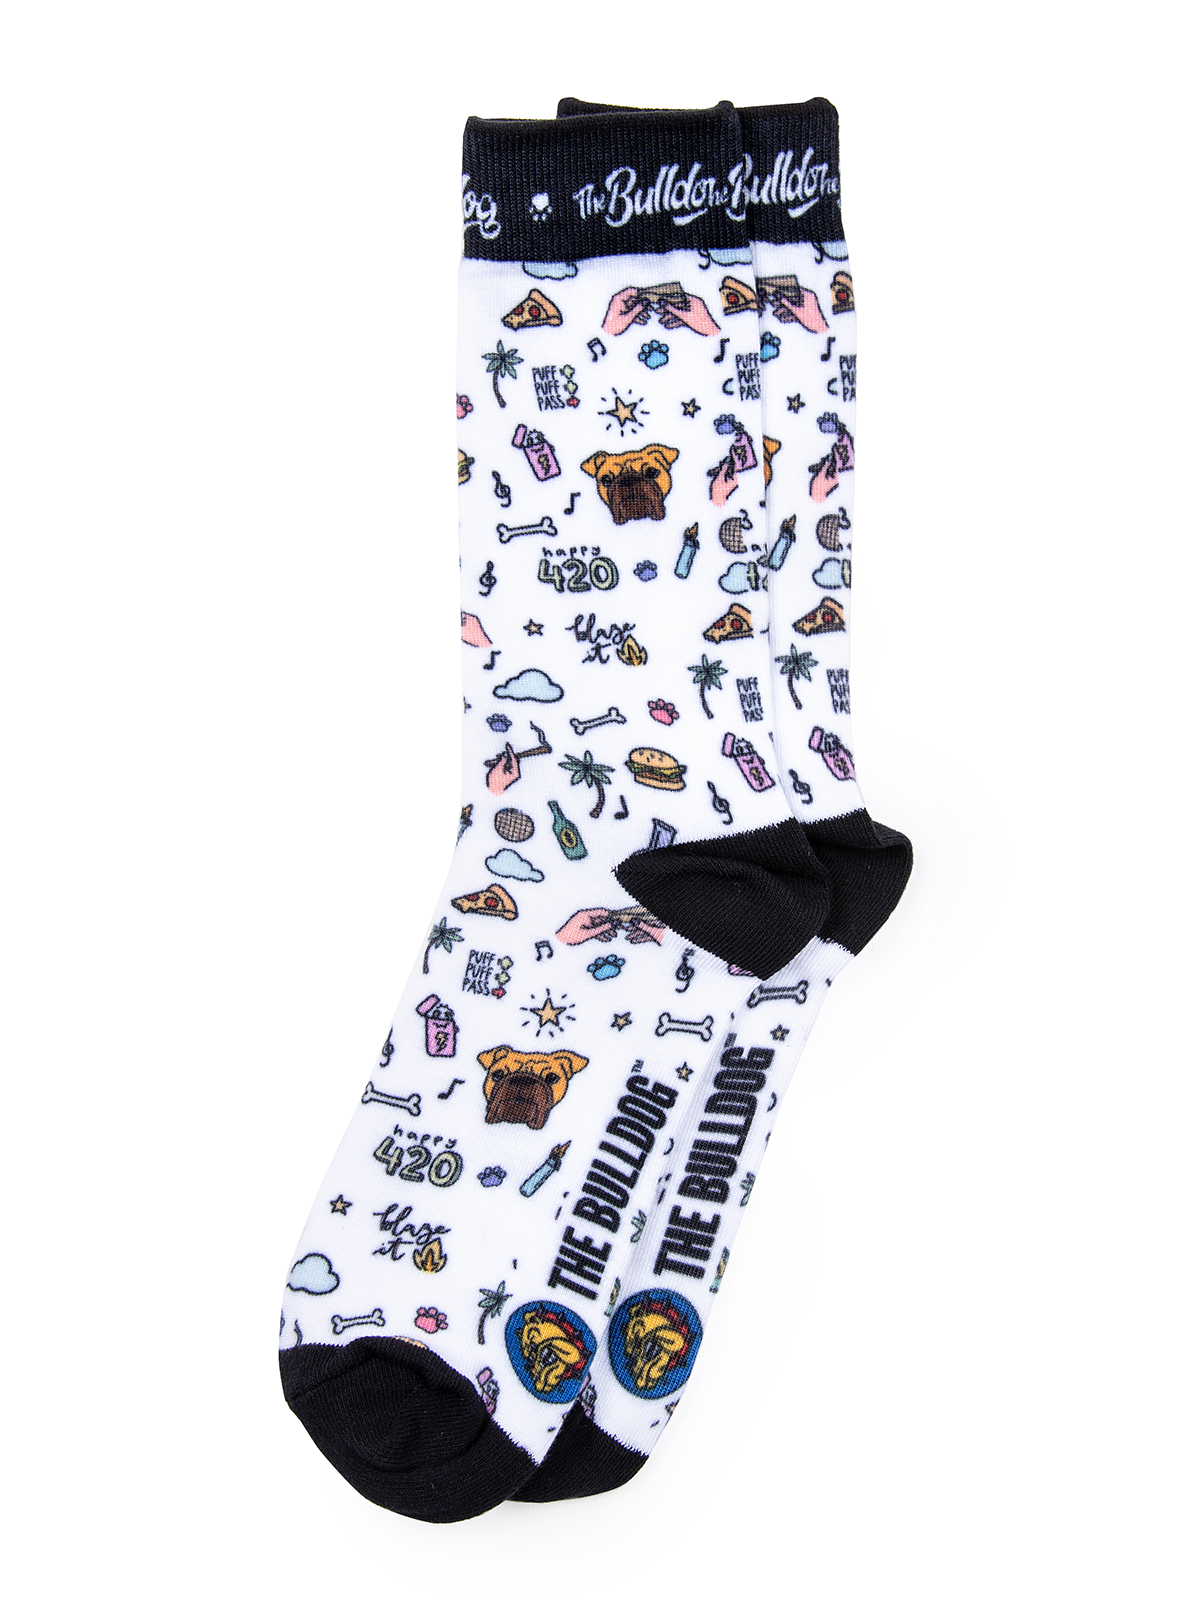 these are The Bulldog Doodle Socks